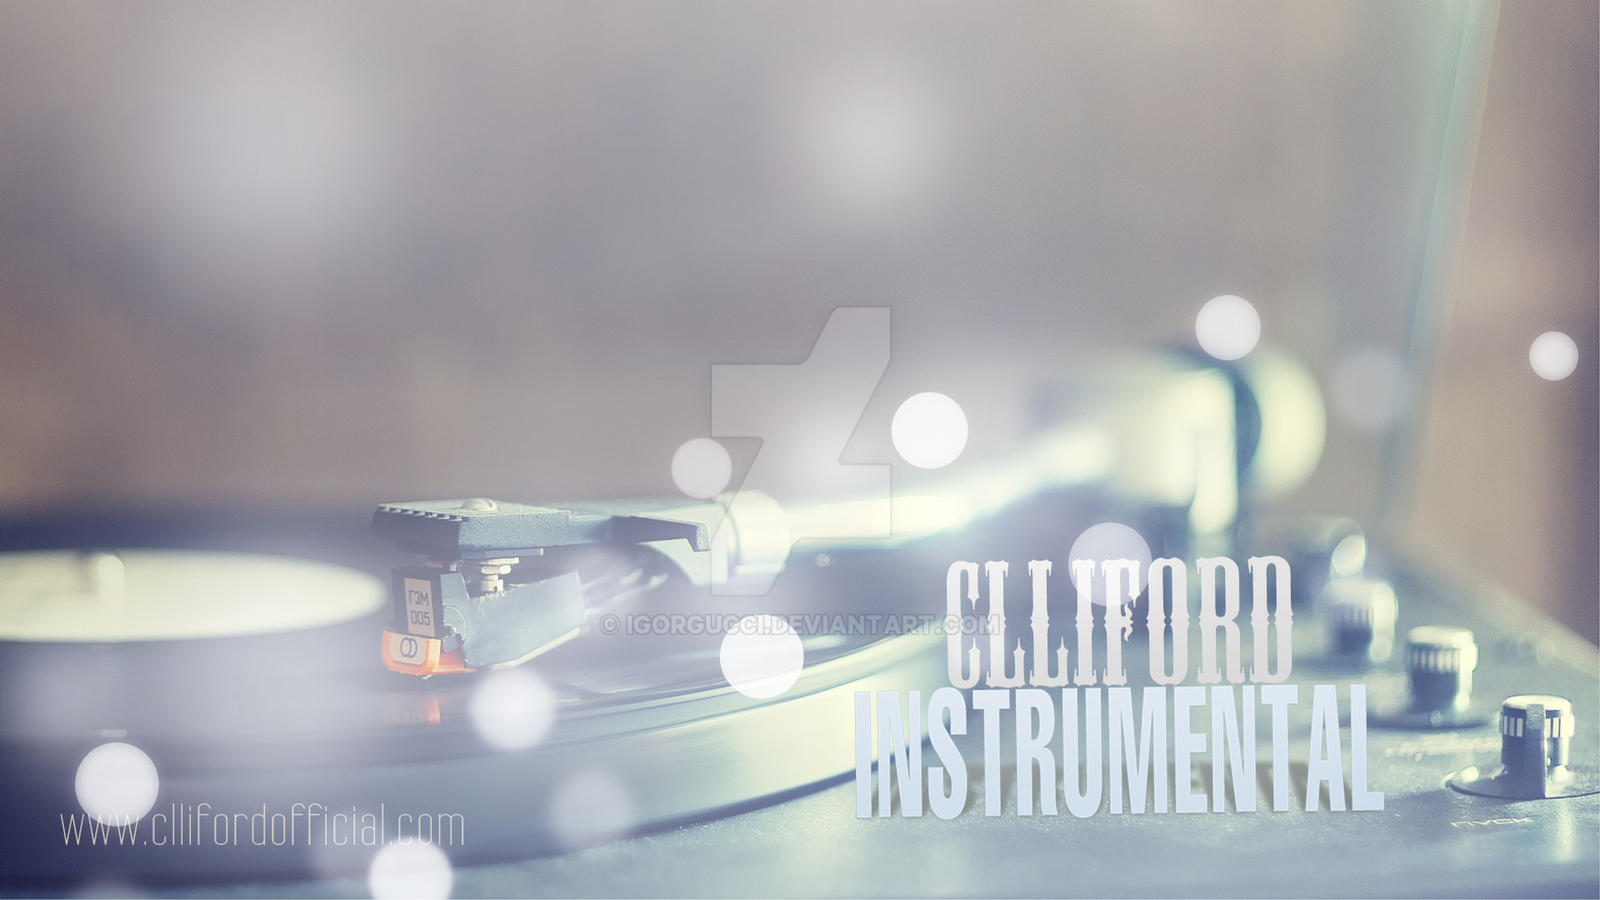 Clliford Instrumental [YouTube Cover] by igorgucci